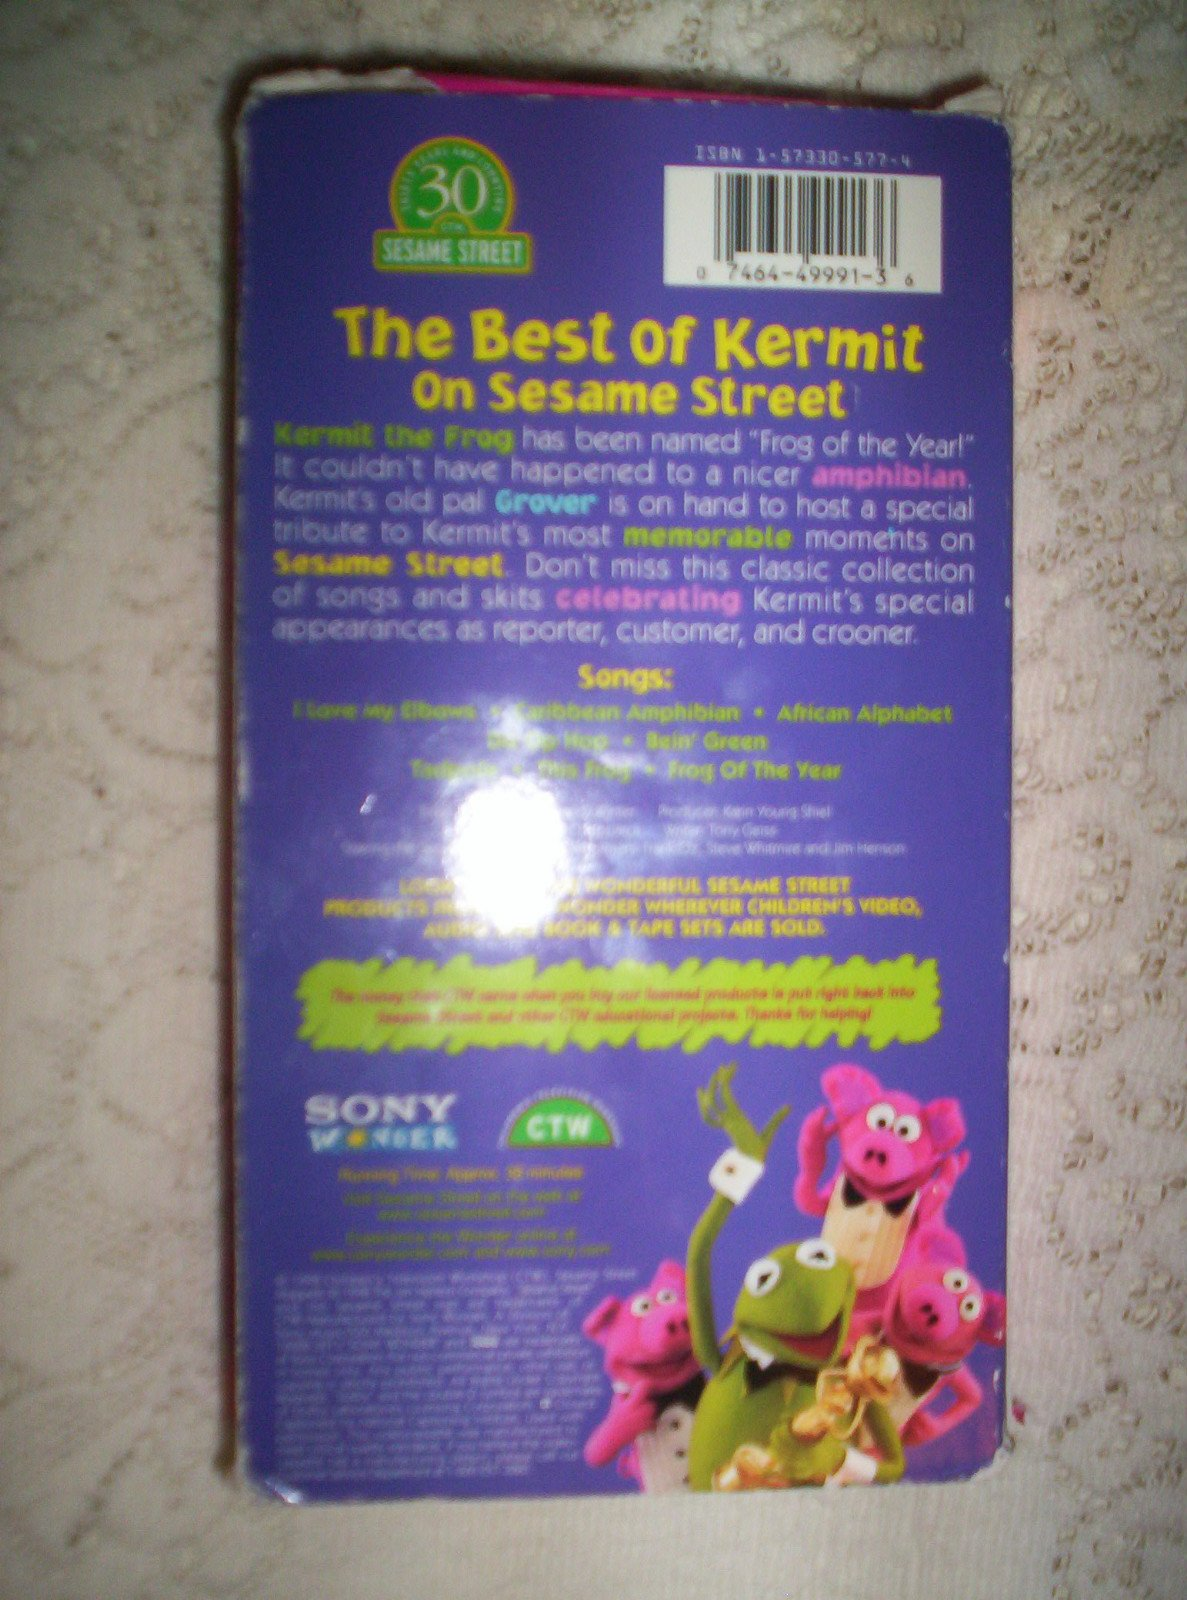 Sesame Street - The Best of Kermit on Sesame Street [VHS] by Sony